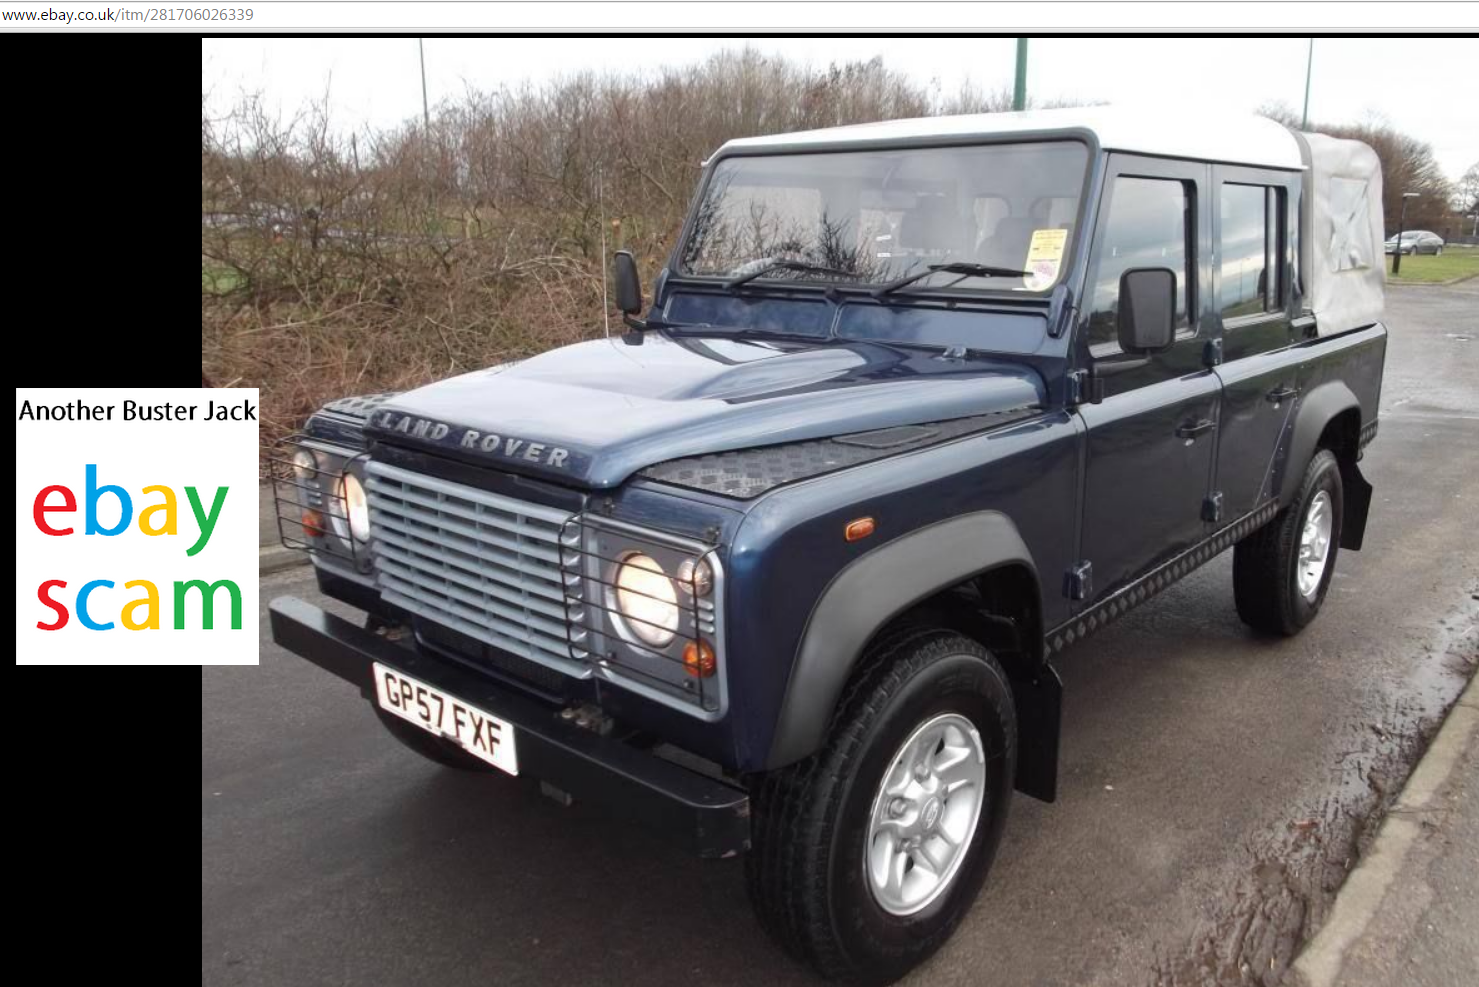 both we stocked as land well north main img sales in ebay workshop landrover rover parts new used yorkshire situated shops and dealer ripon vehicle offering are a